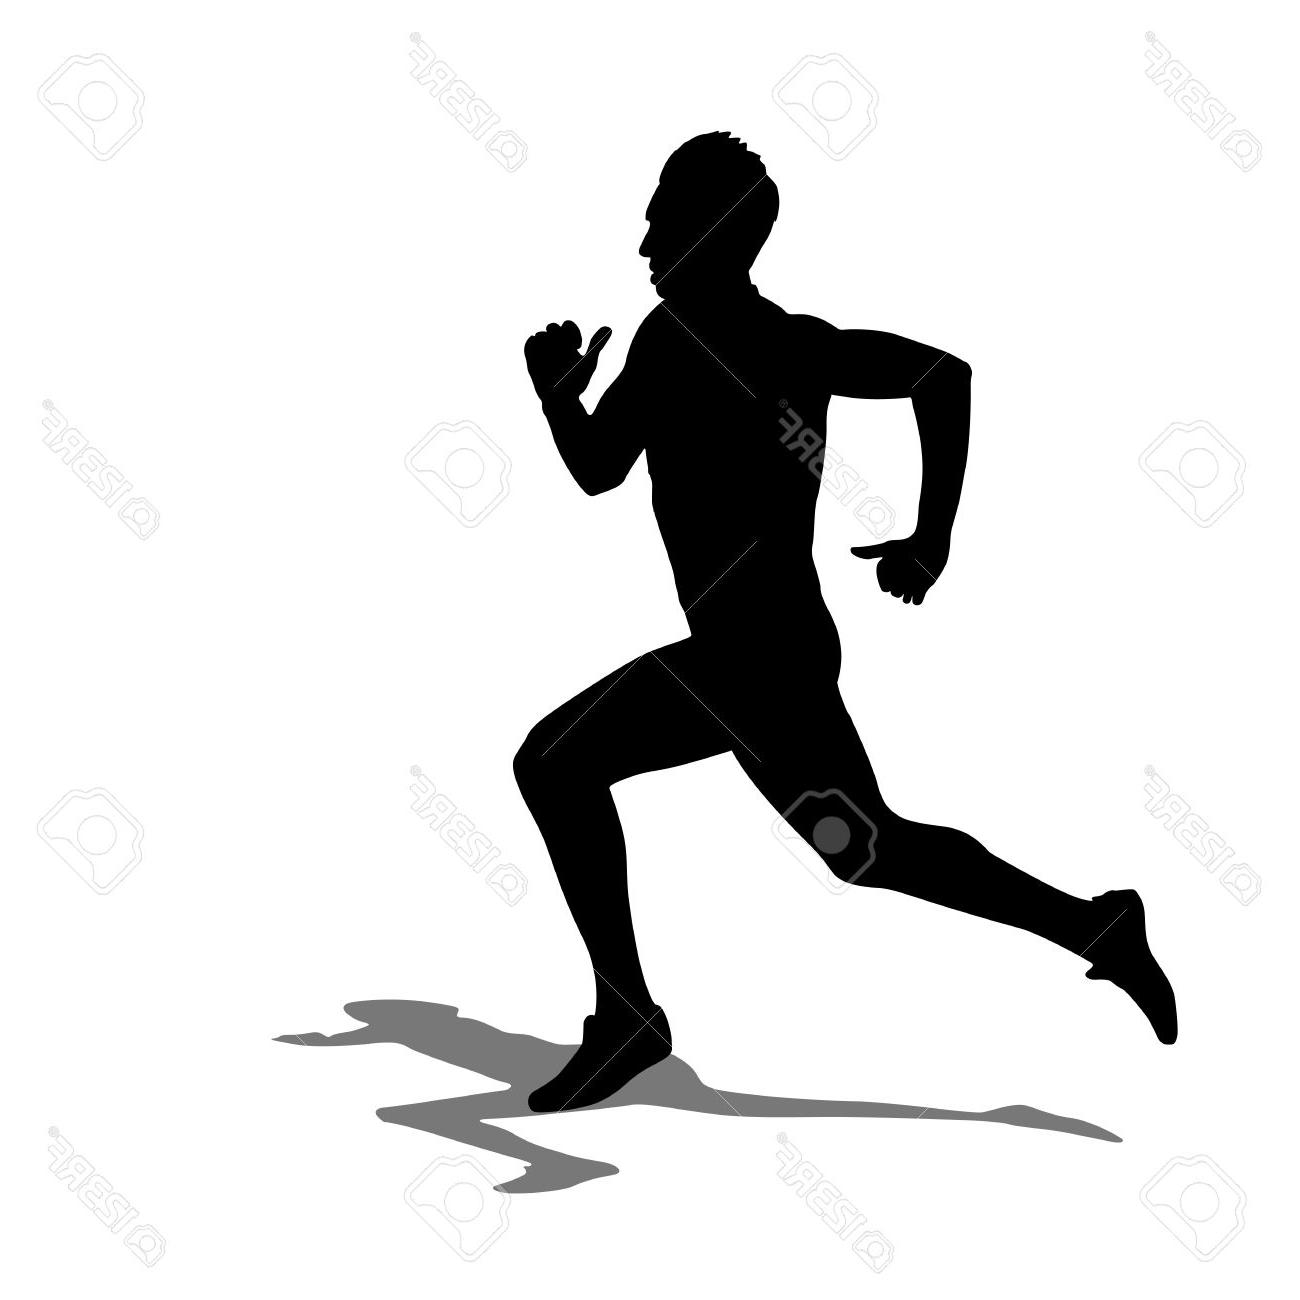 1300x1300 Best 15 Running Silhouettes Illustration Stock Vector Runner